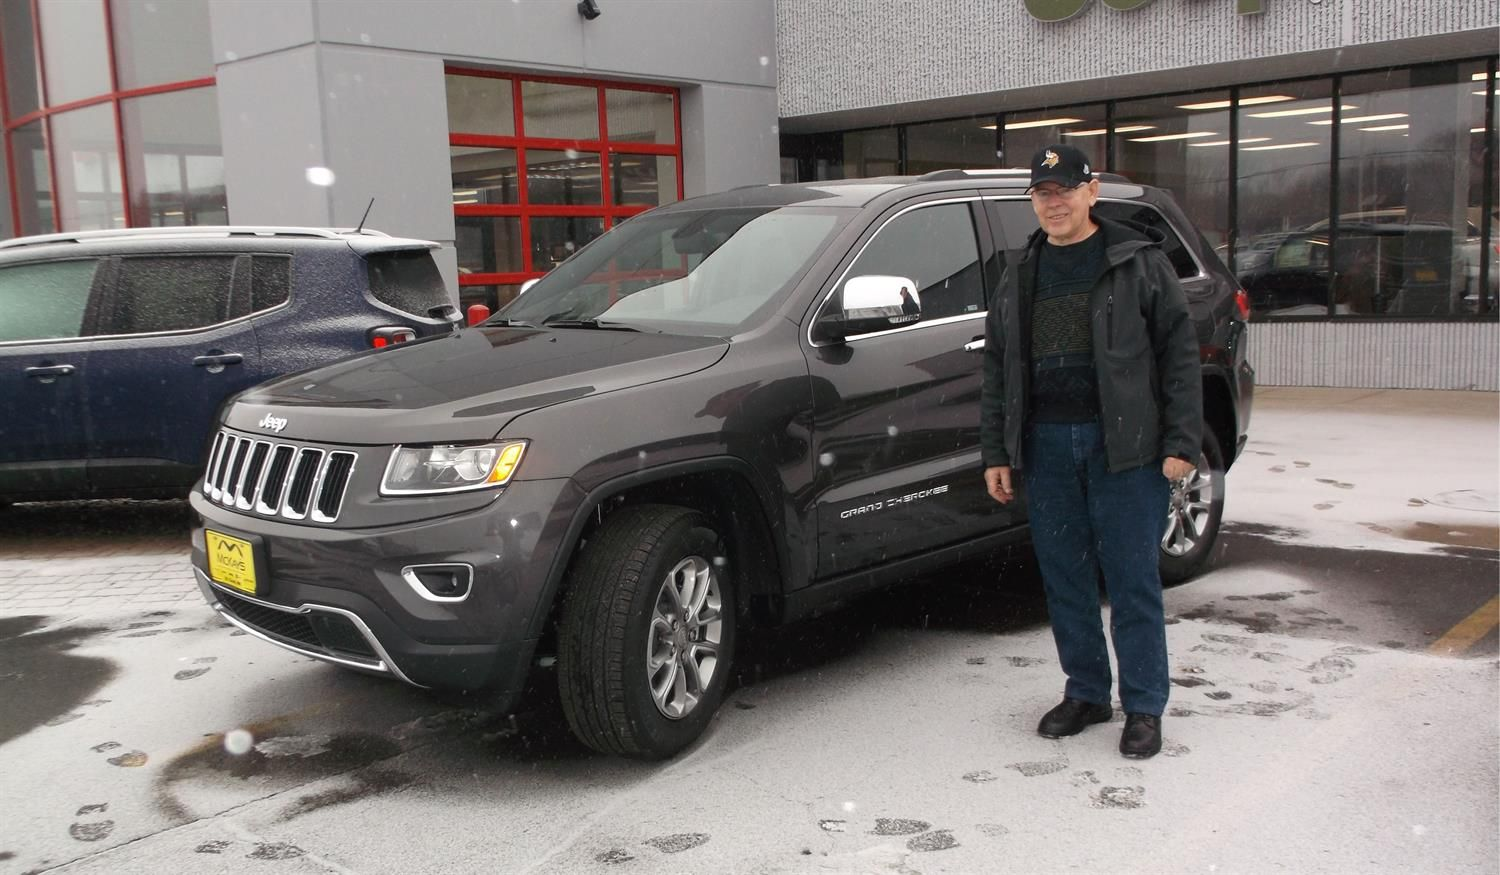 Reuben S New 2015 Jeep Grand Cherokee Congratulations And Best Wishes From Mckay S Chrysler Dodge Jeep Ram And Travis Chrysler Dodge Jeep Jeep Grand 2015 Jeep